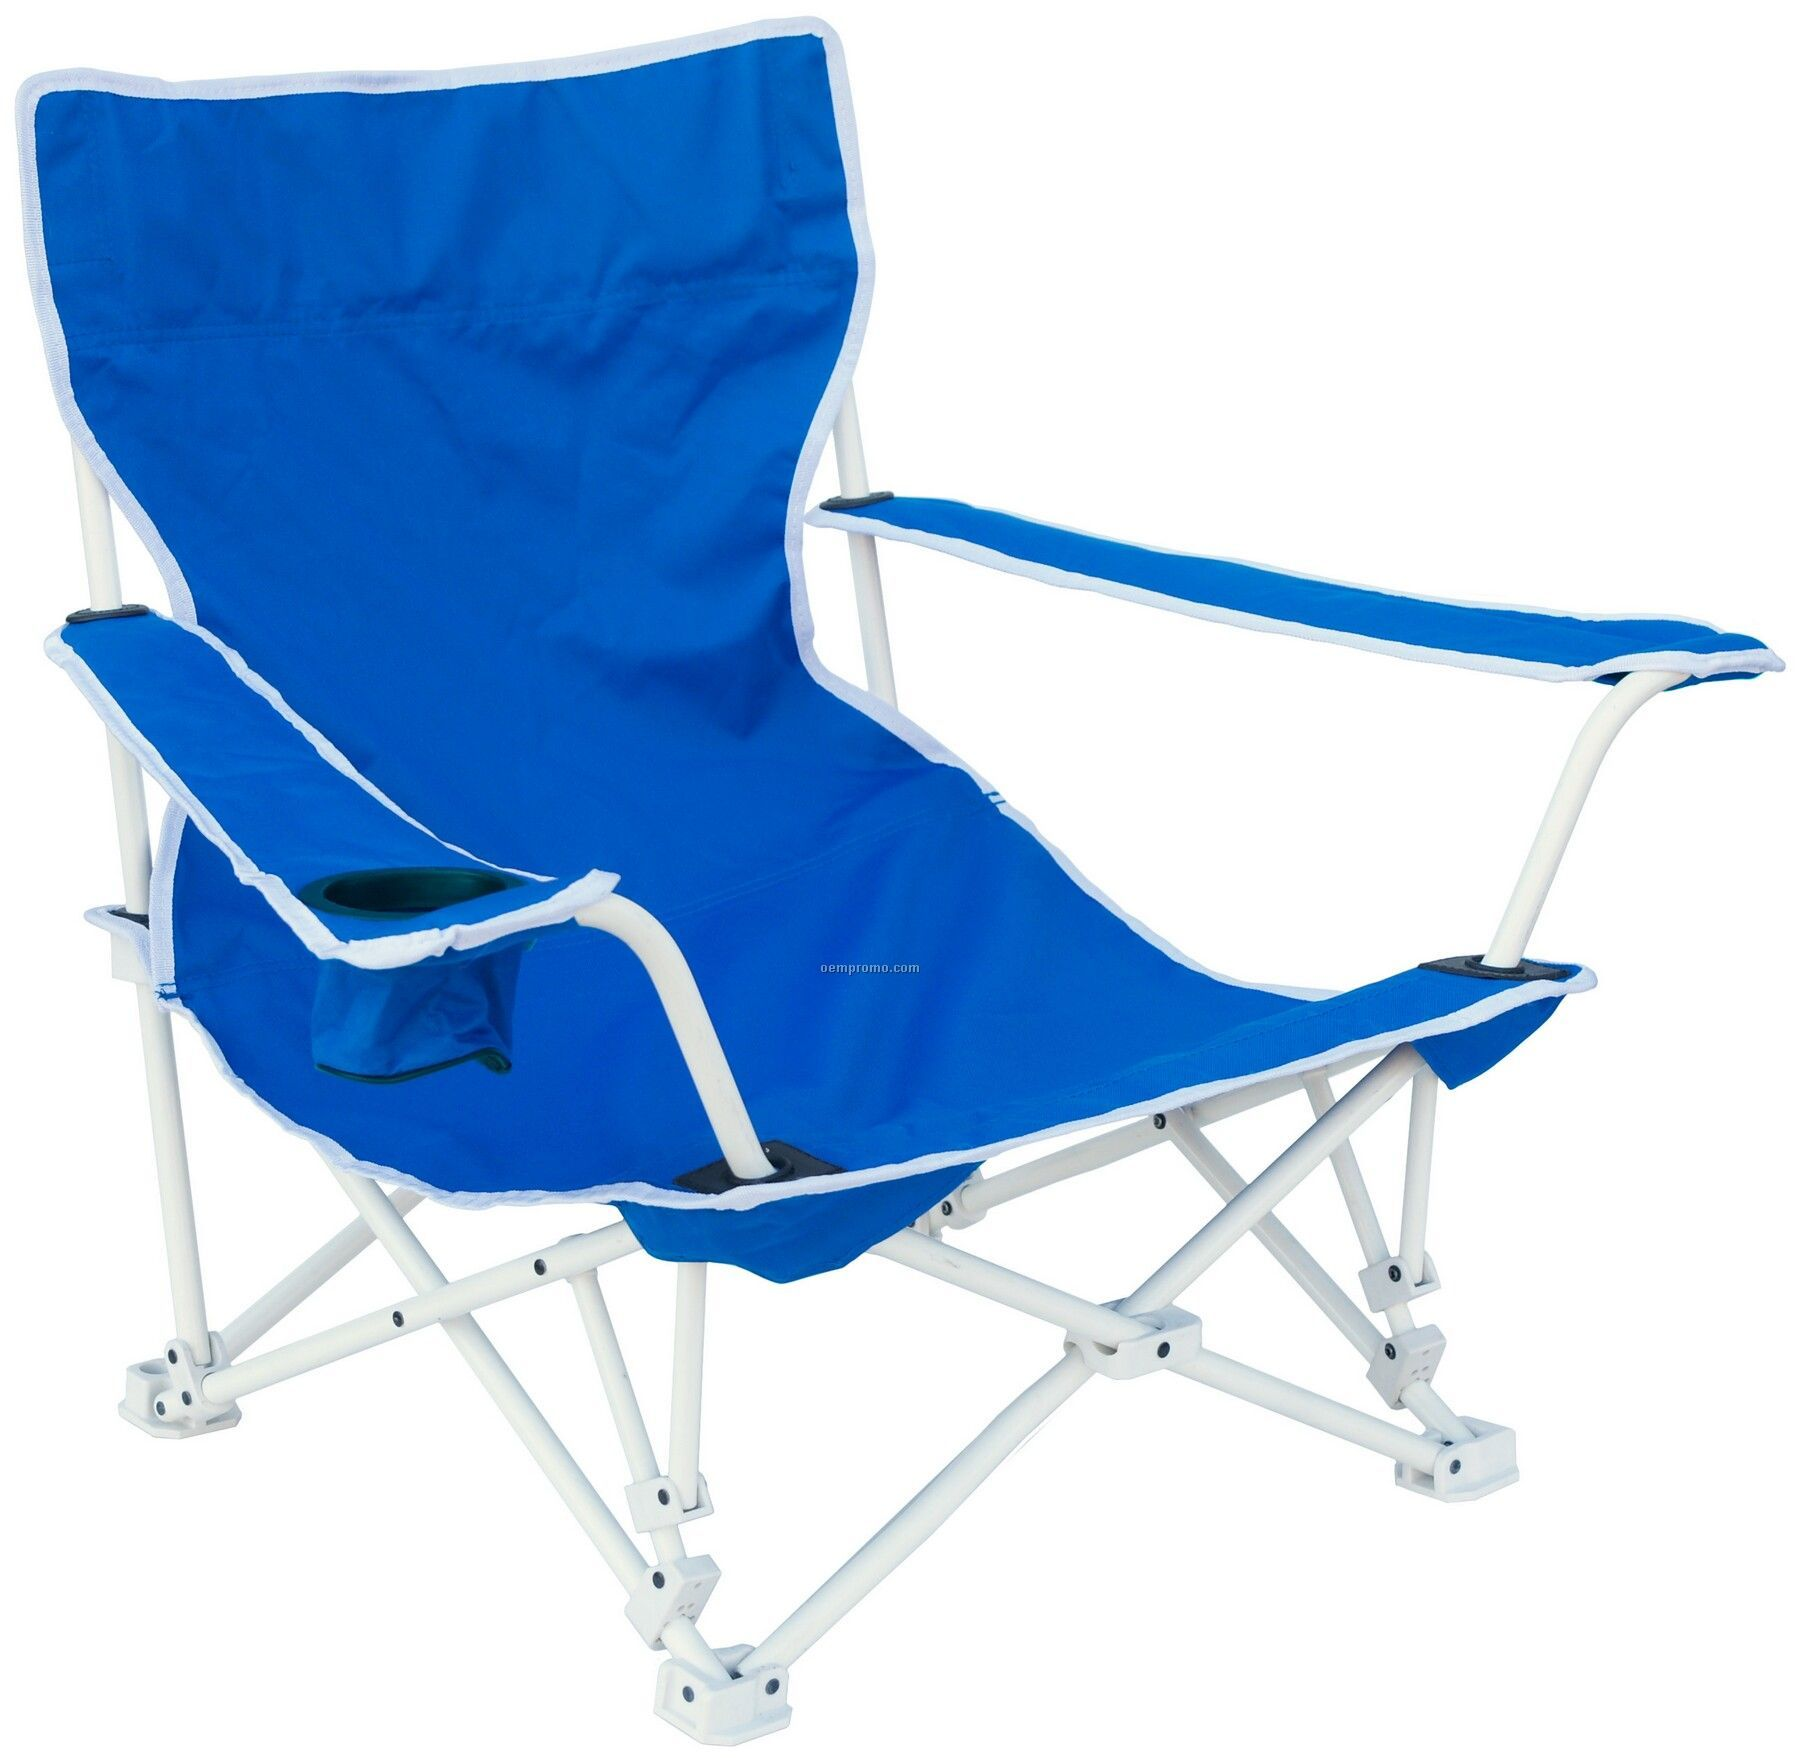 Direct Import Deluxe Folding Beach Chair With Carry Bag